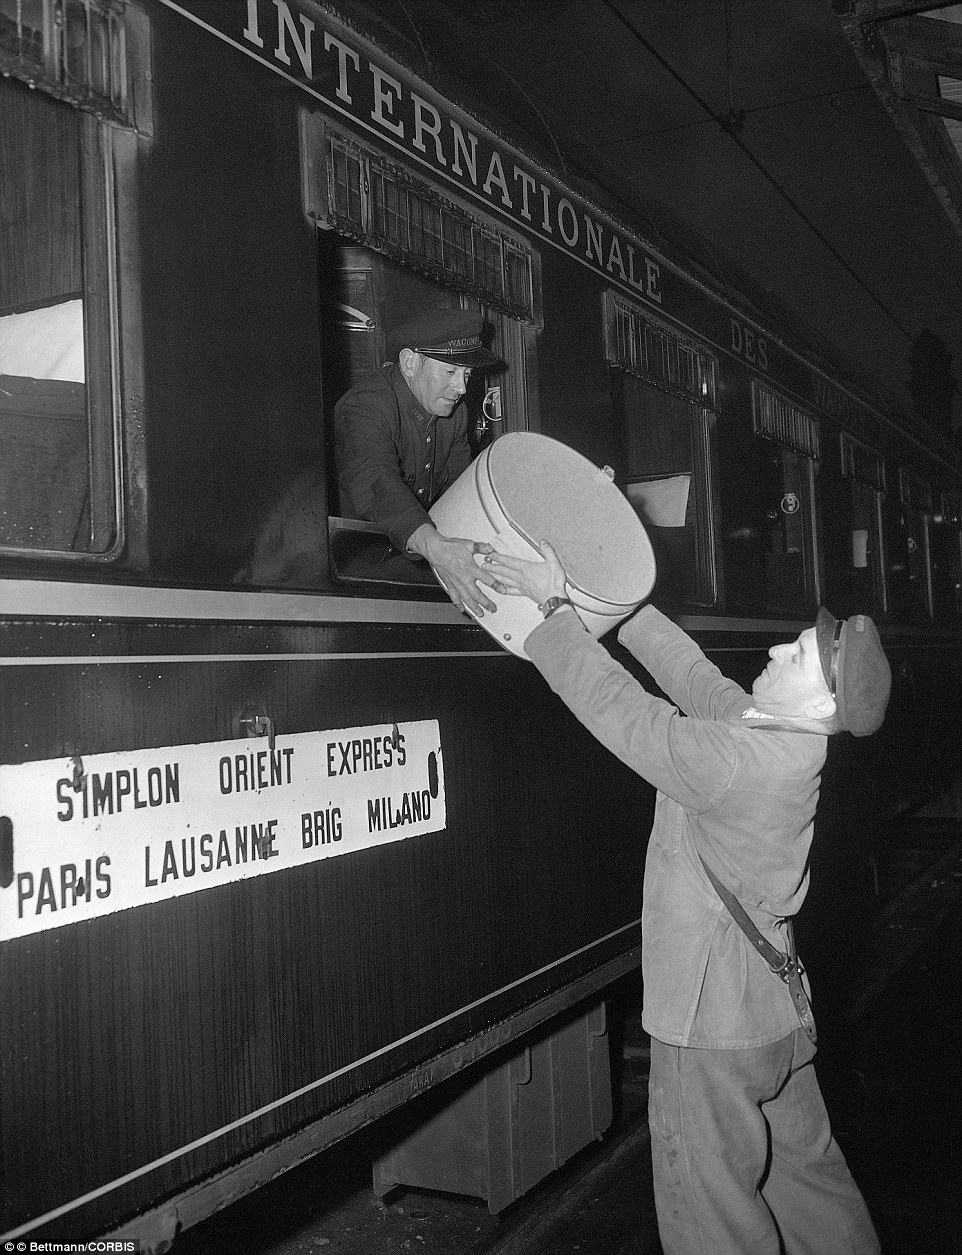 Pictured just before the Simplon-Orient Express began its journey from London to Istanbul via Venice and Paris